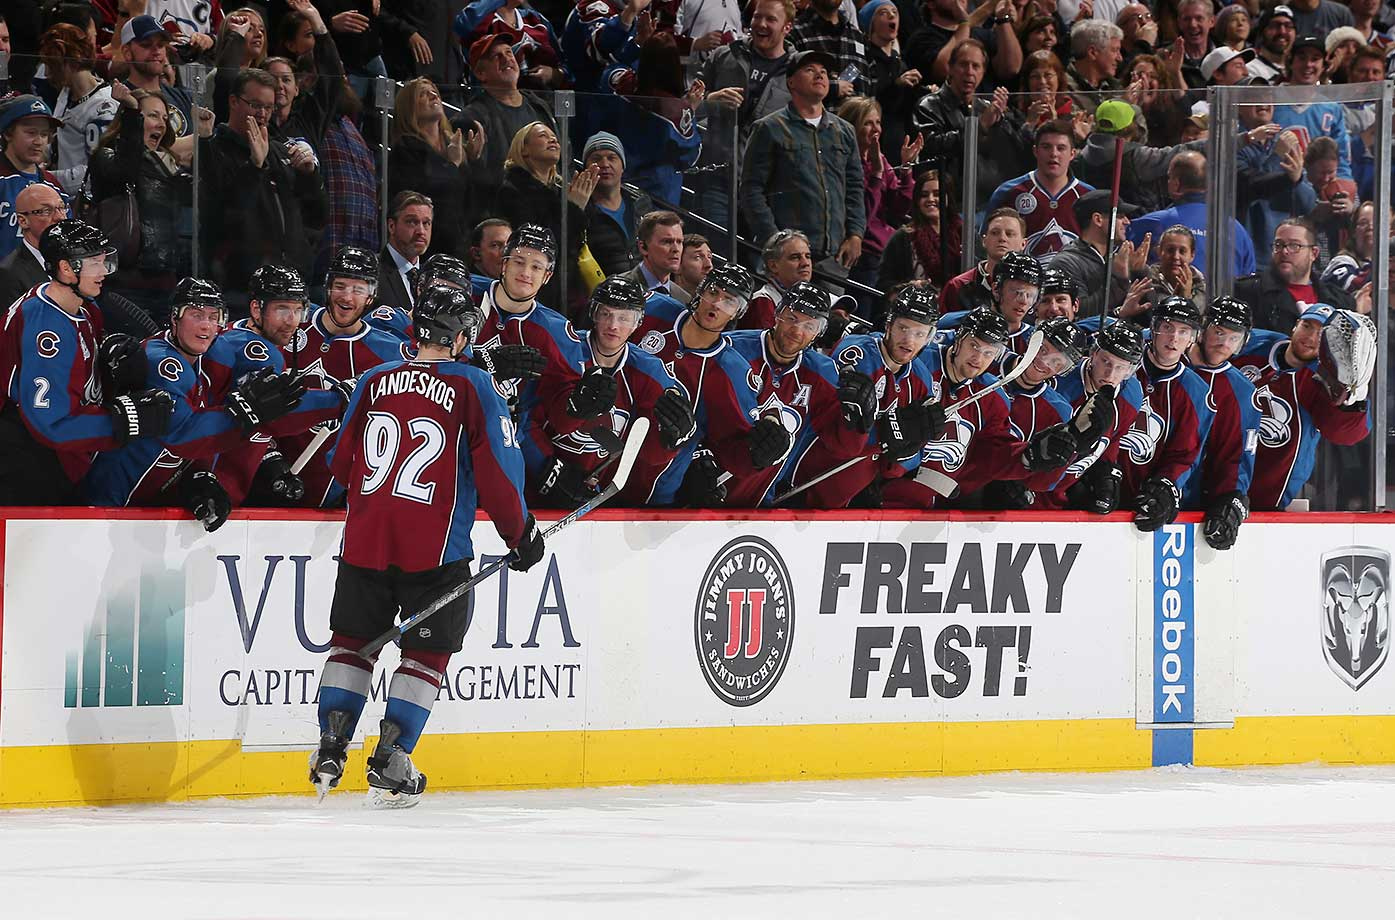 Gabriel Landeskog of the Colorado Avalanche celebrates with his bench after scoring the first goal in an overtime shootout against the St. Louis Blues.